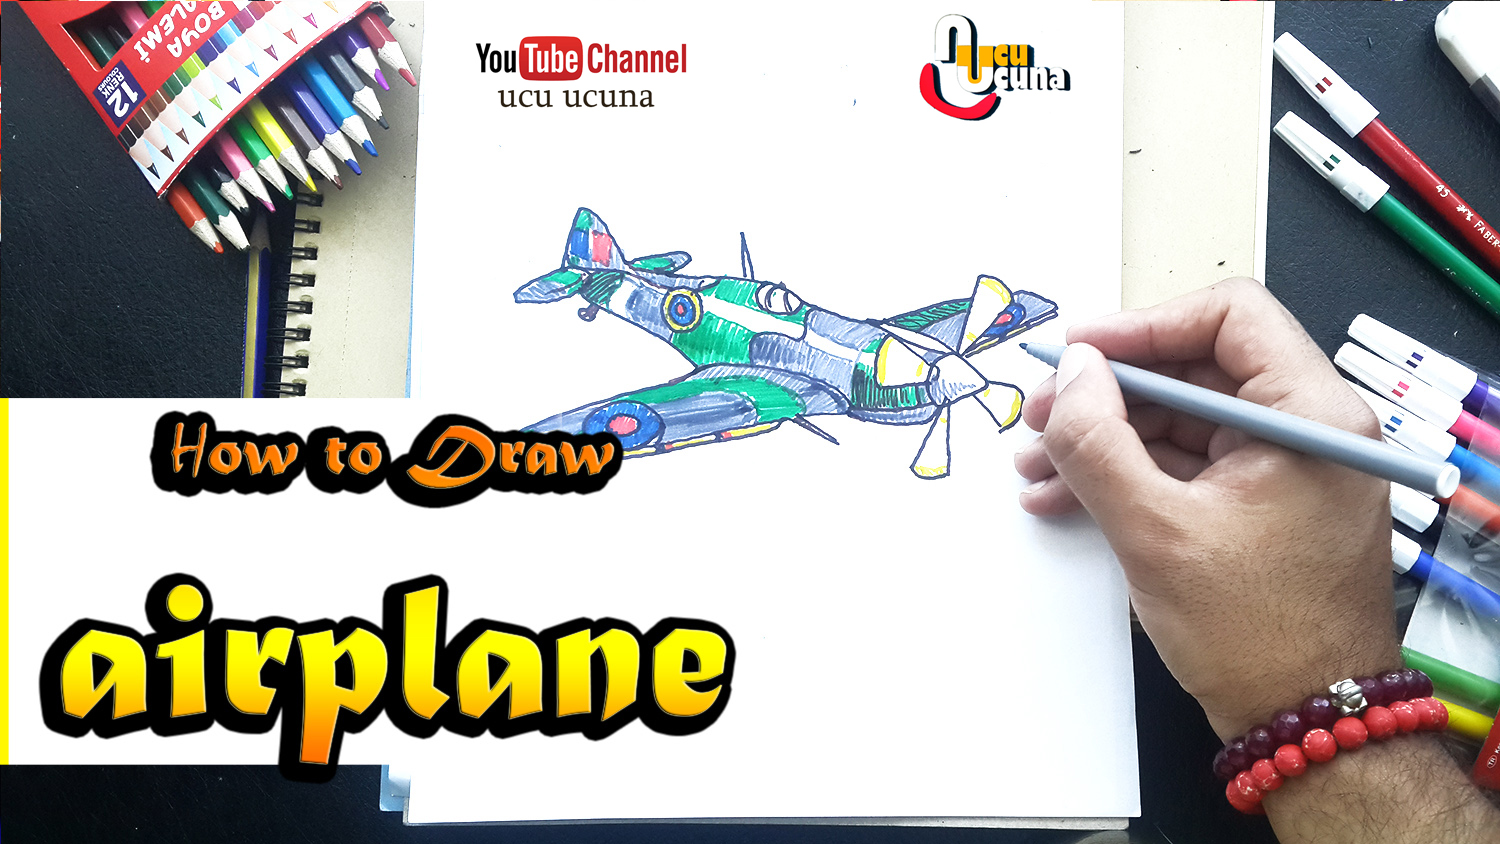 Hi everyone i ll be showing you how to draw airplane step by step Let s learn draw for  kids  art  important at my life  drow  with me i hope you like funny videos  tutorial if you like my draw you click my youtube channel ucu ucuna